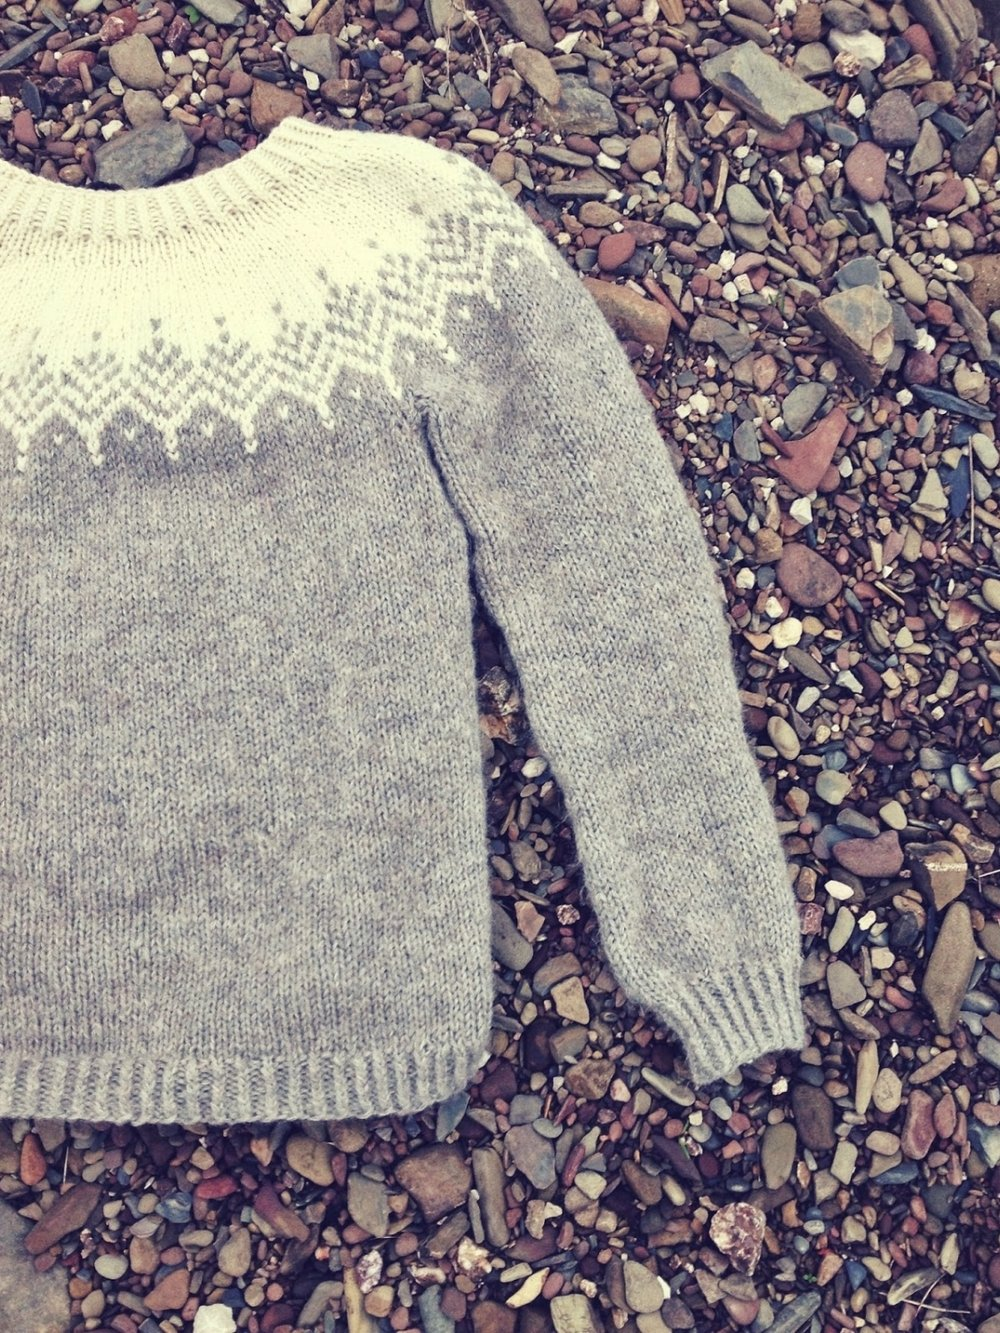 The Fluffy Feather sweater pattern